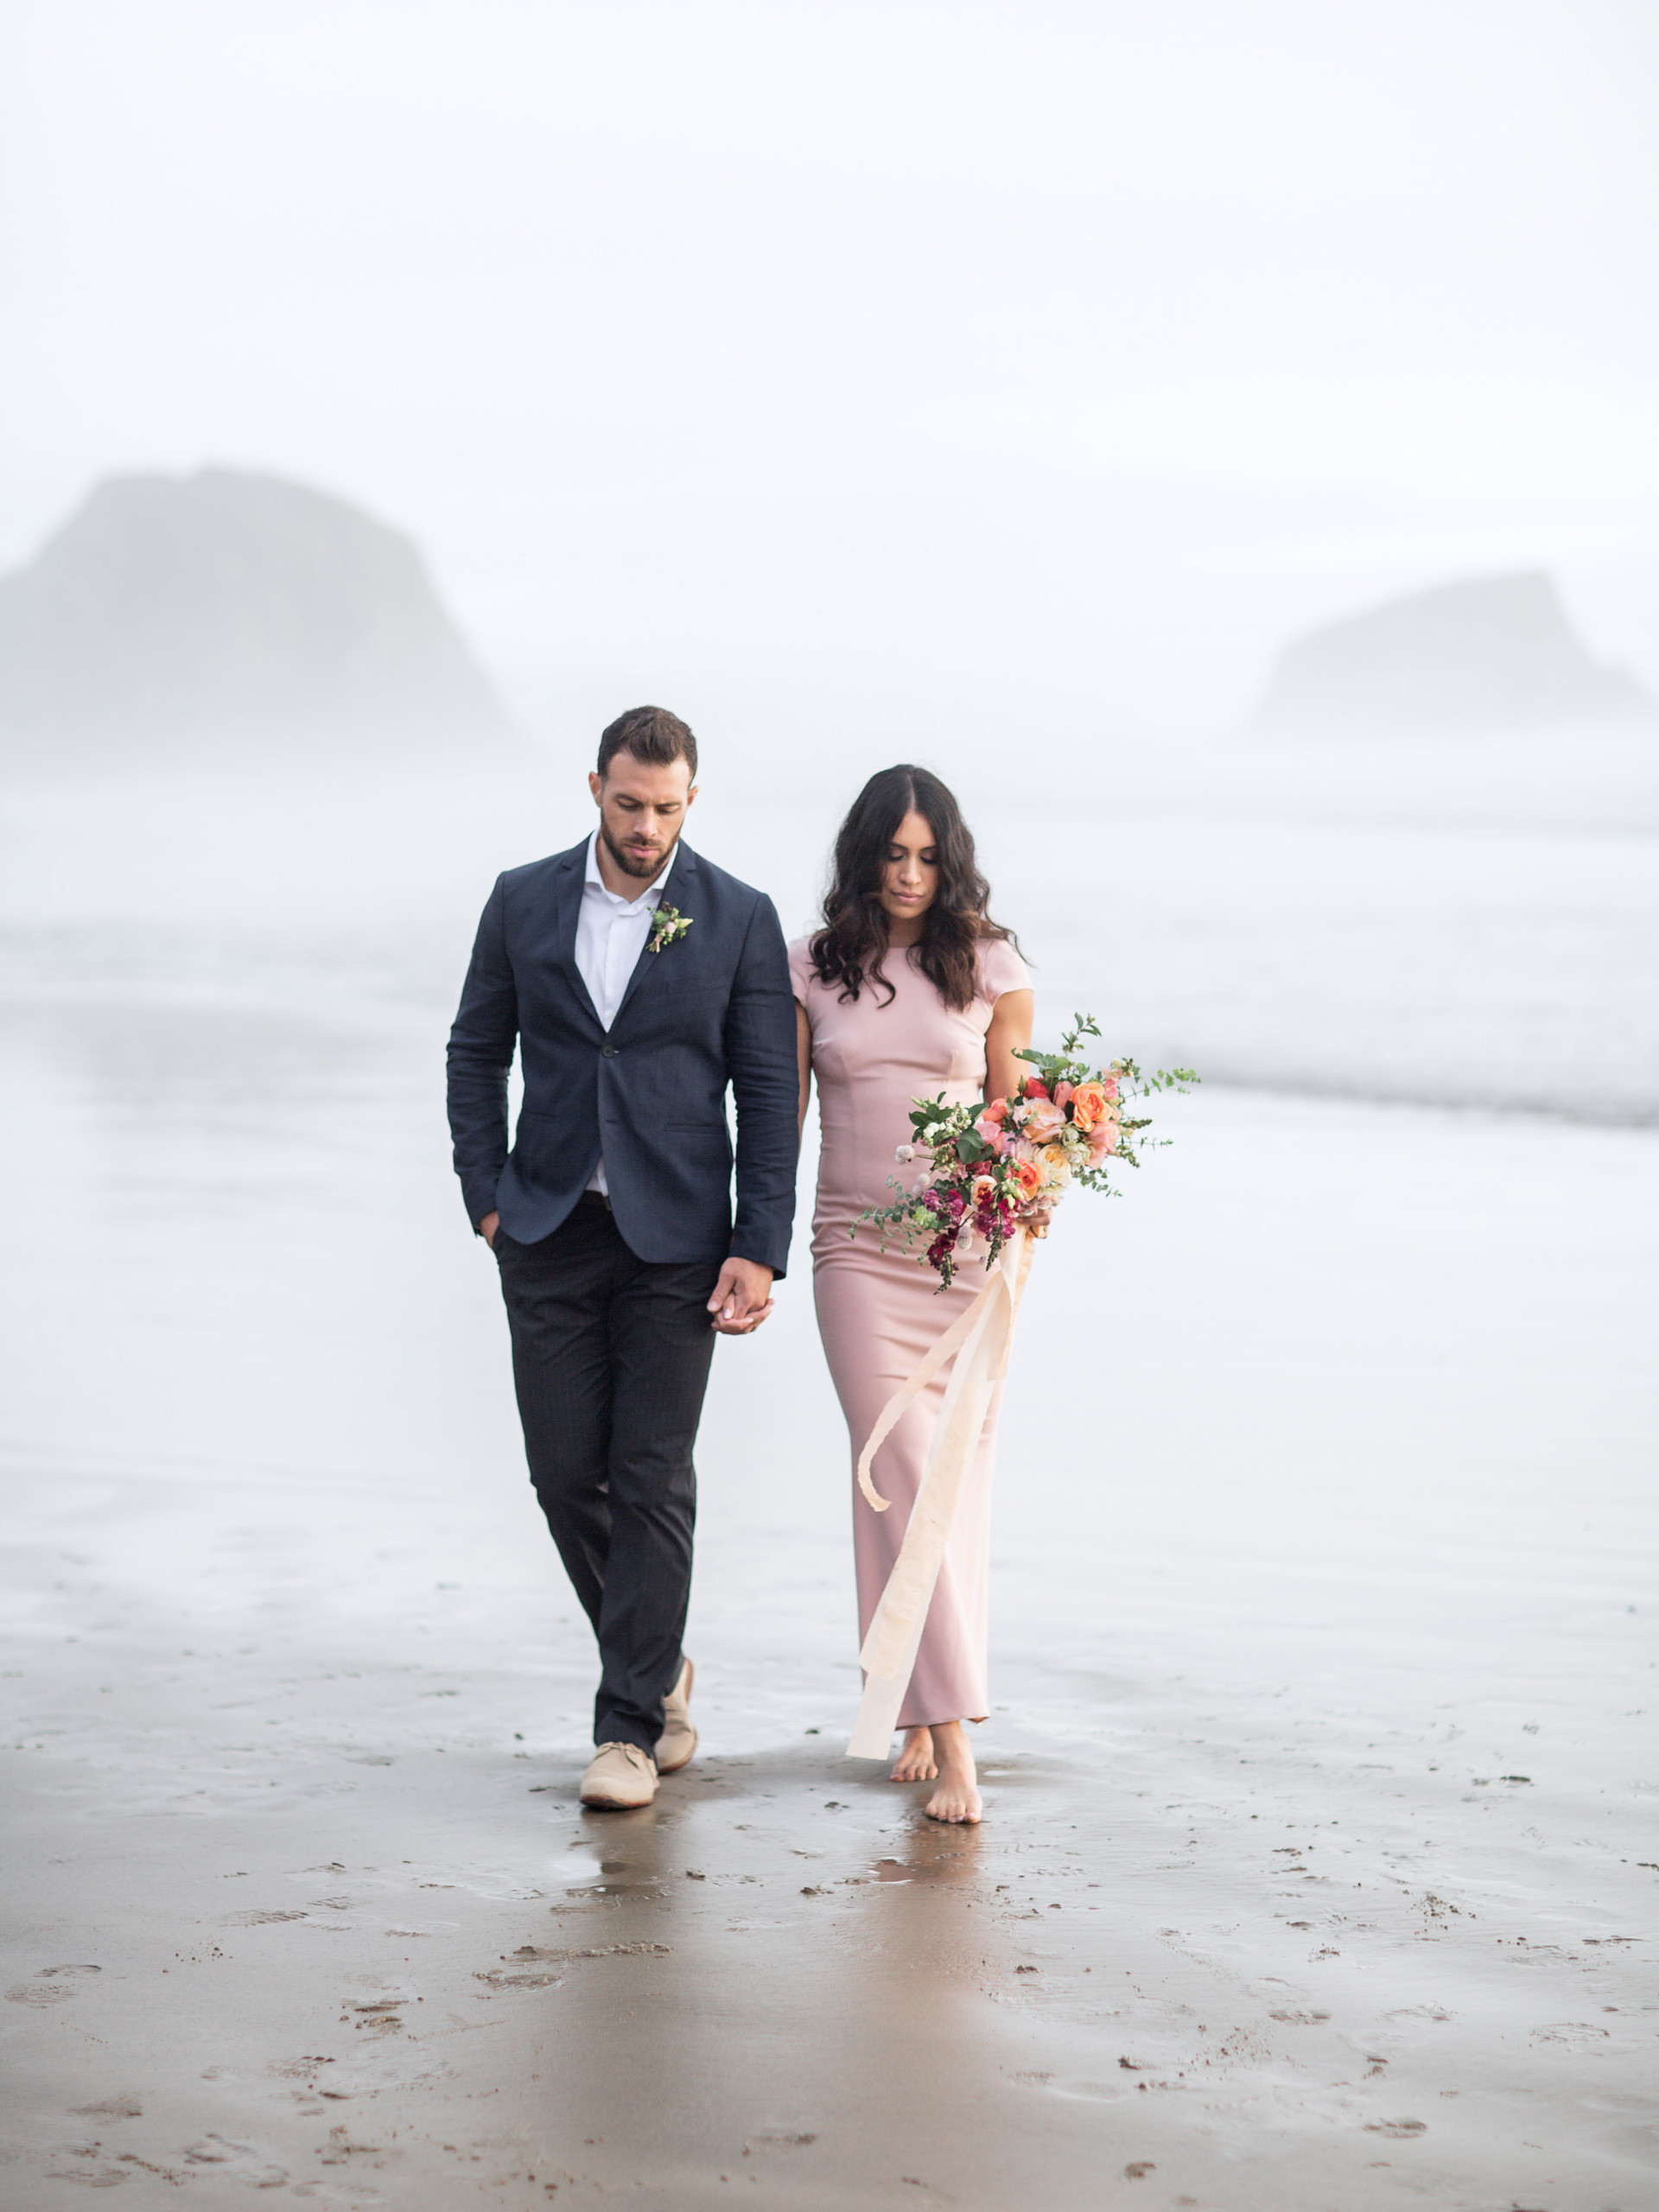 Cannon Beach Engagement Session Fine Art Wedding PPhotographer MacCoy Dean